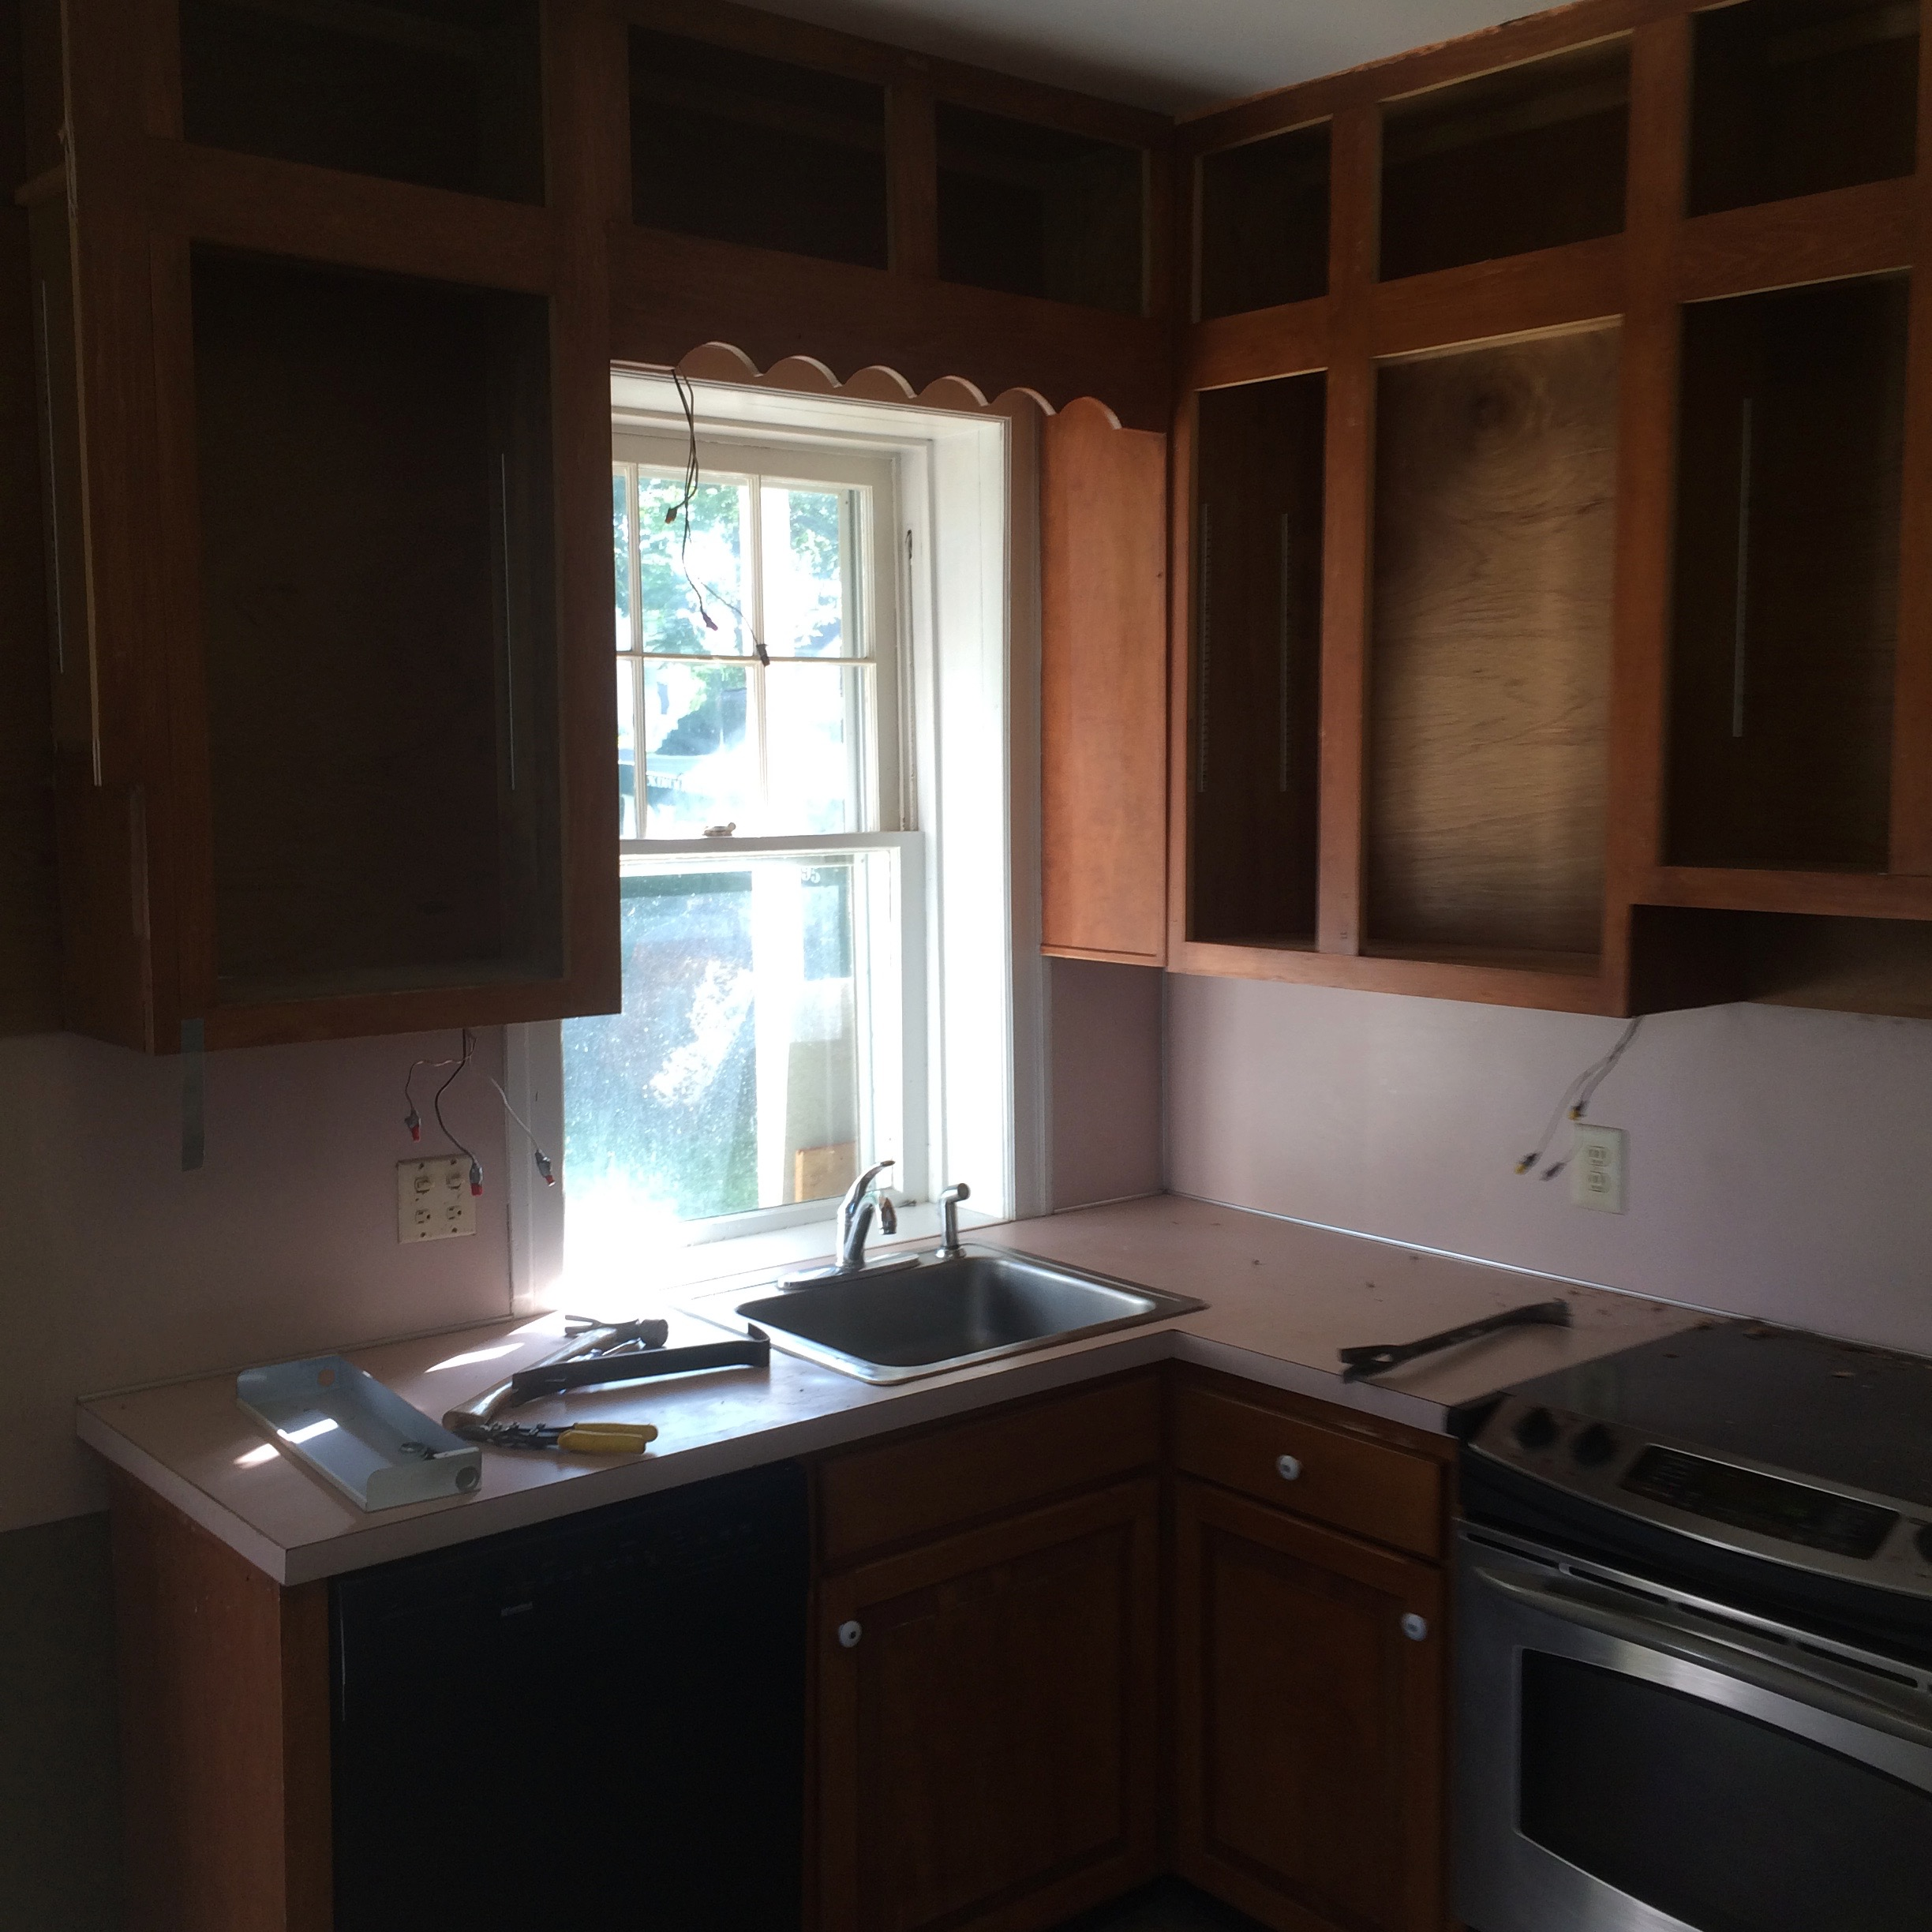 projects kitchen remodeling frederick md Demo of existing kitchen before renovation